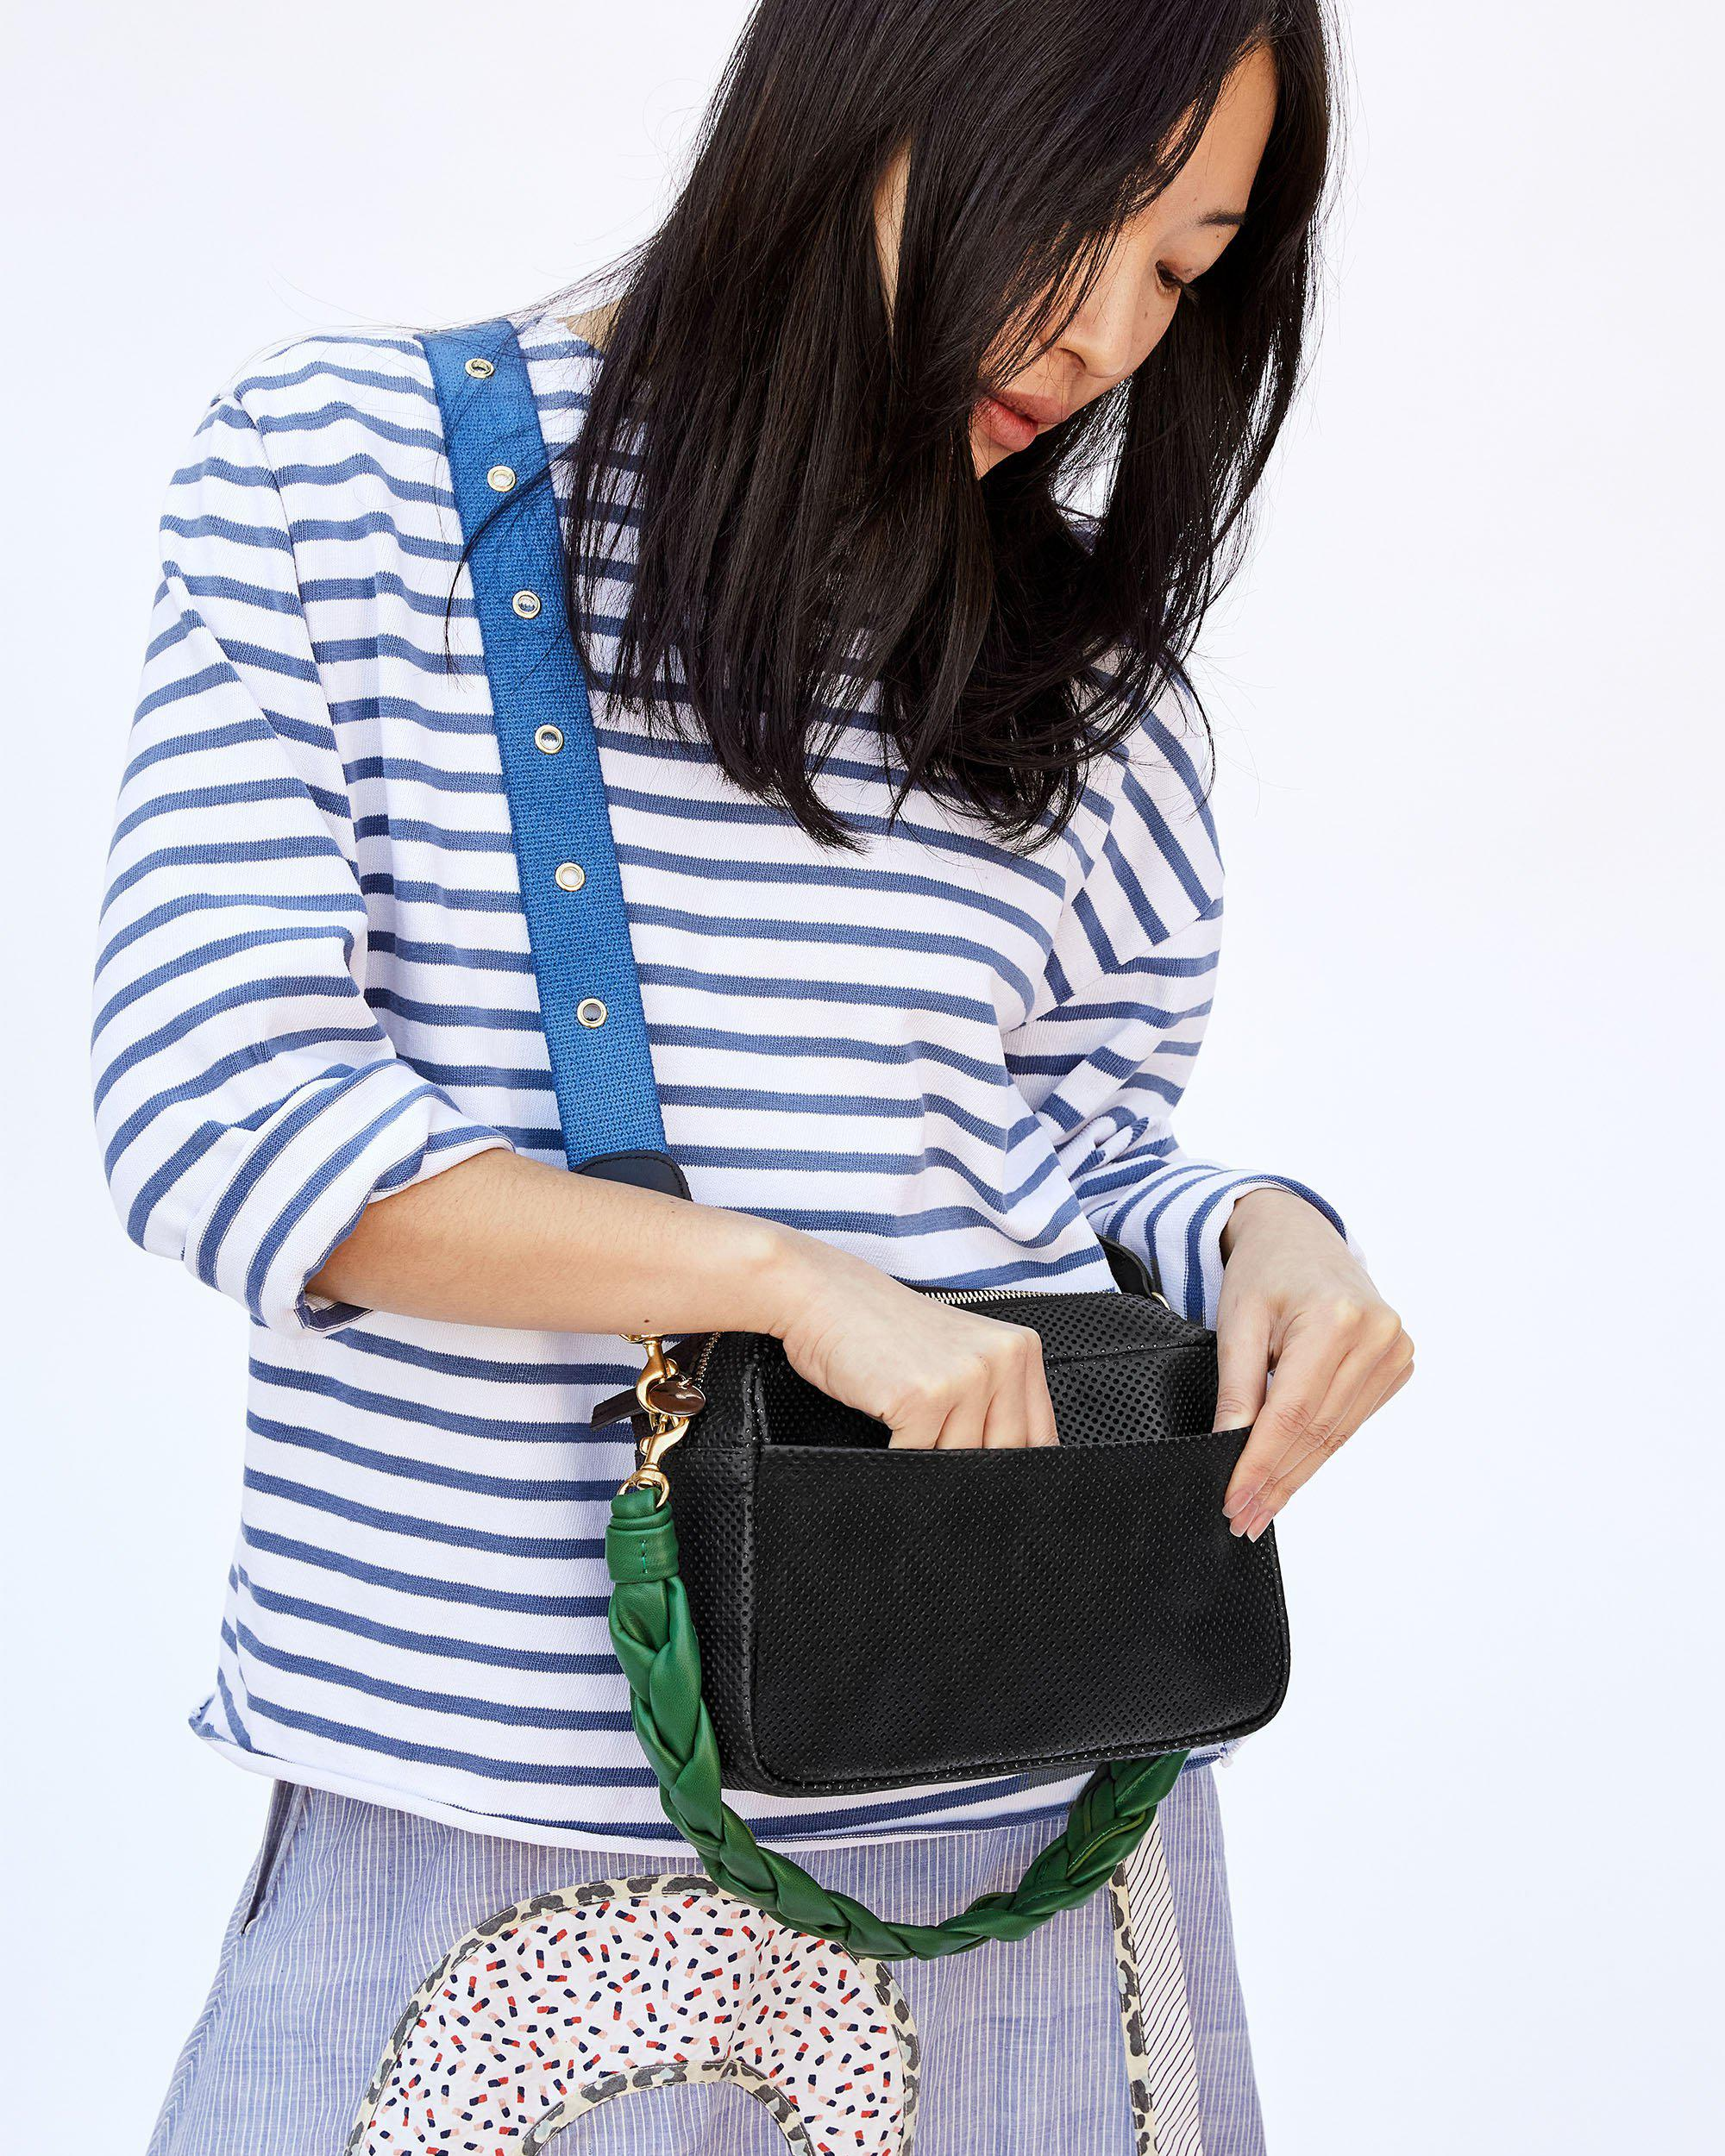 Marisol with Front Pocket 3